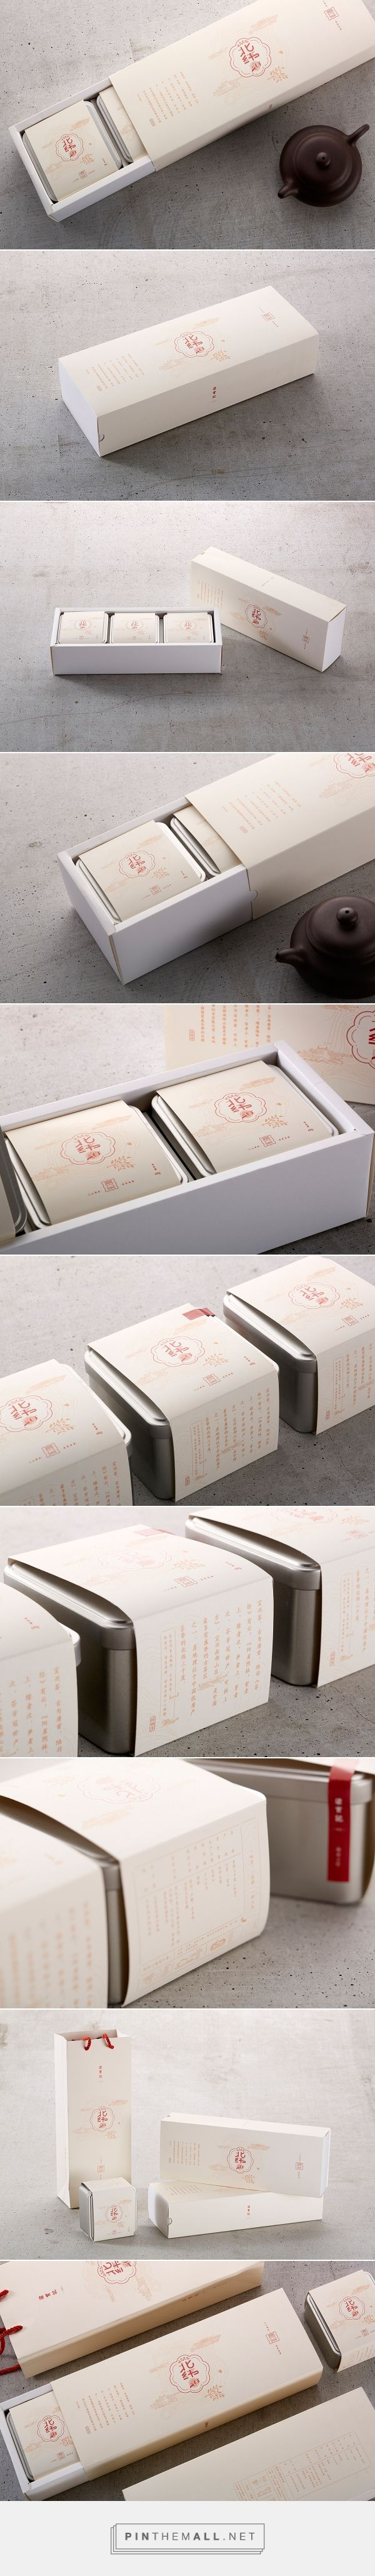 北纬三十度 / tea packaging by Yuho Studio